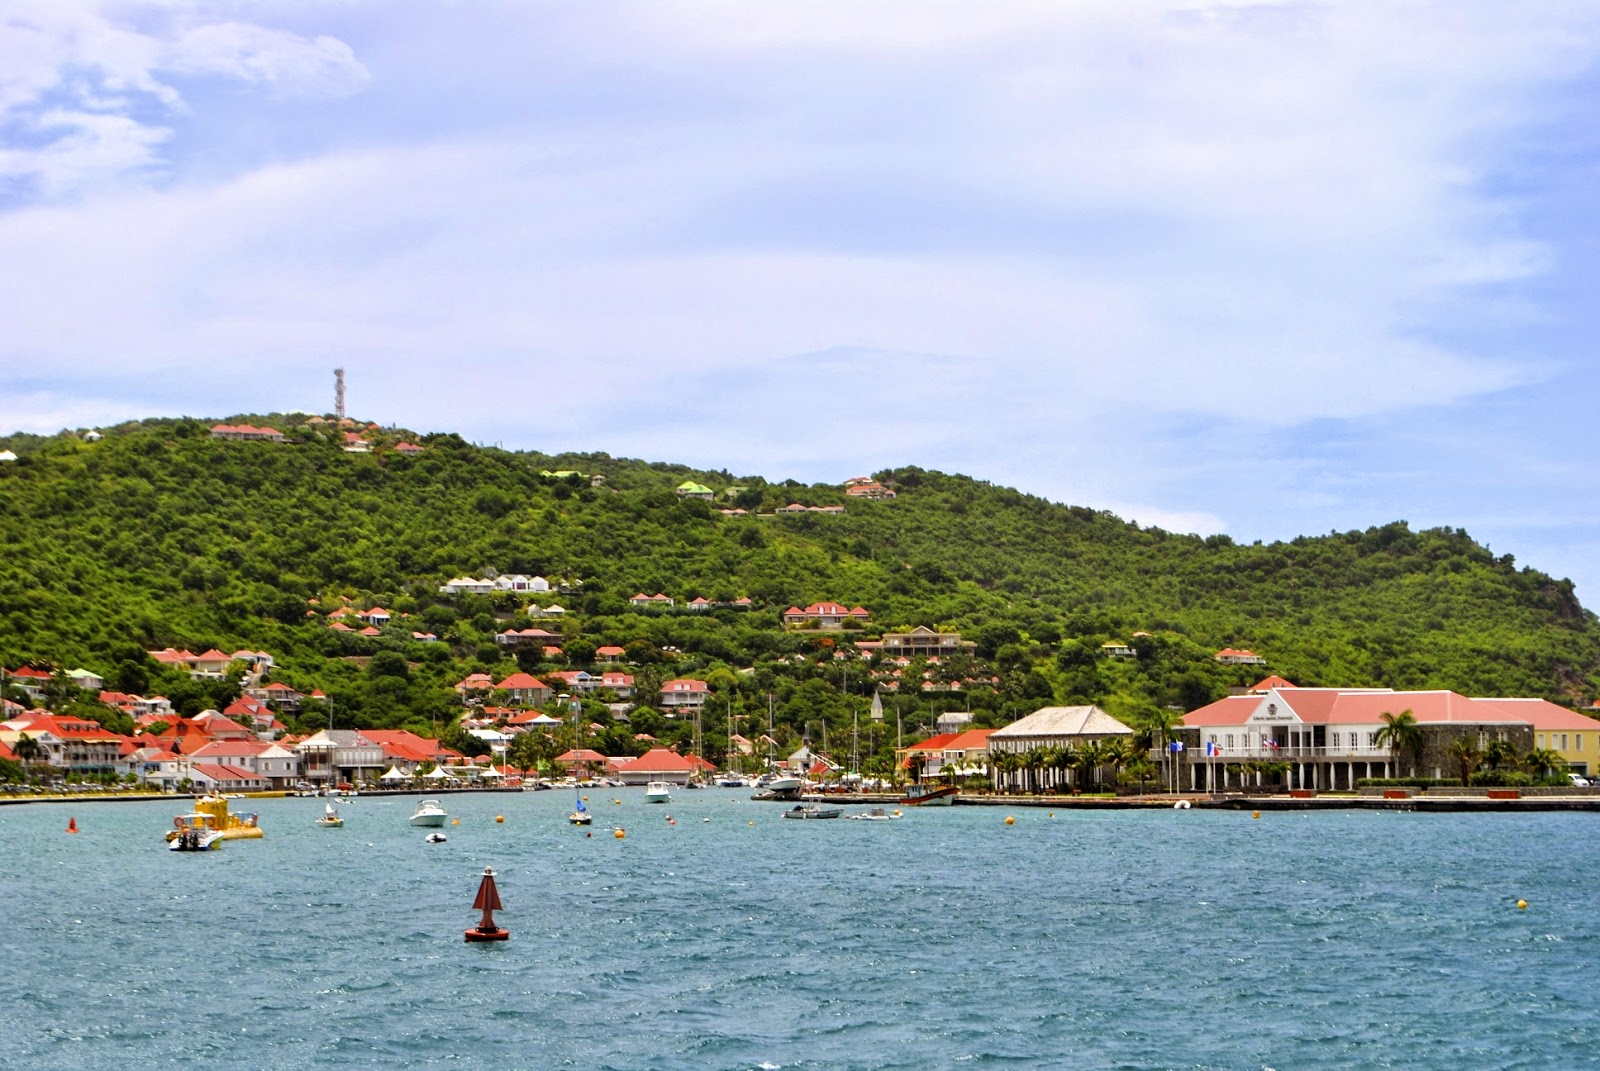 St barts caribbean vdudesv for St barts in the caribbean